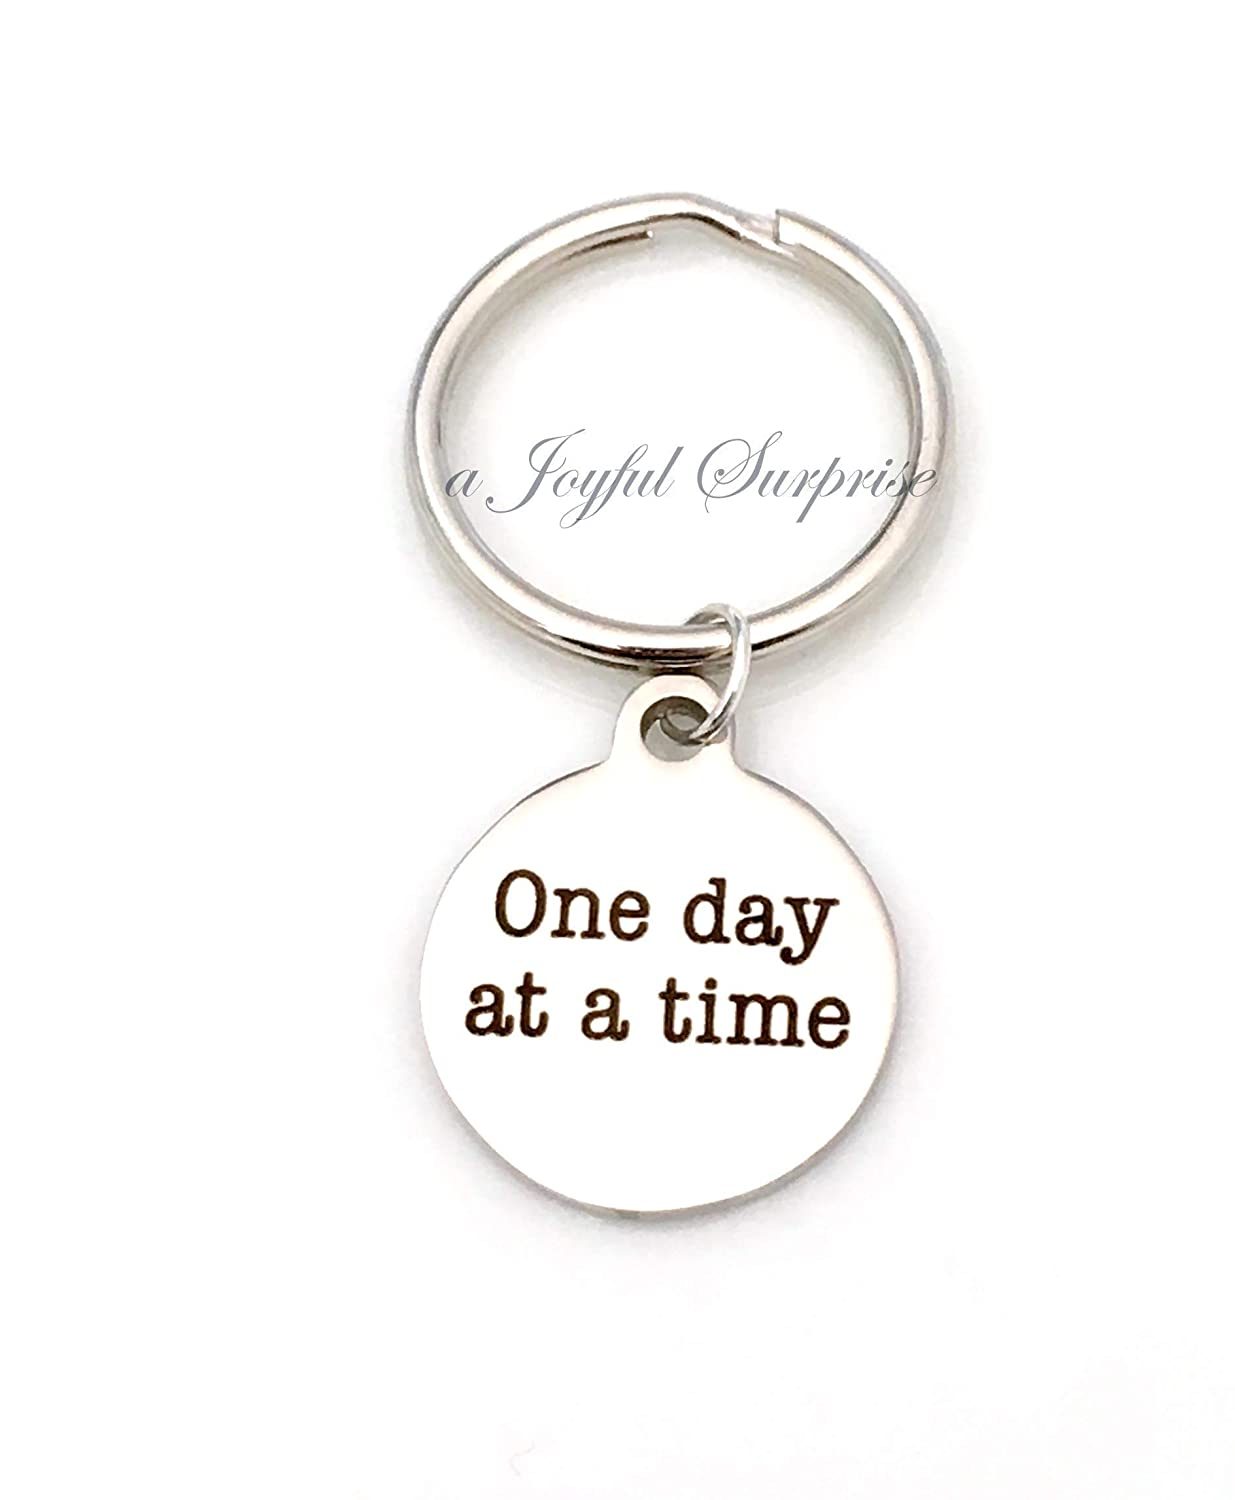 AA Keyring Thank you Gift CLEARANCE SALE Alcoholics Anonymous Key Chain One Day at a Time Keychain For Women or Men Anniversity of Sobriety Gift for Sponsor AA Keyring NA Present 30/% OFF